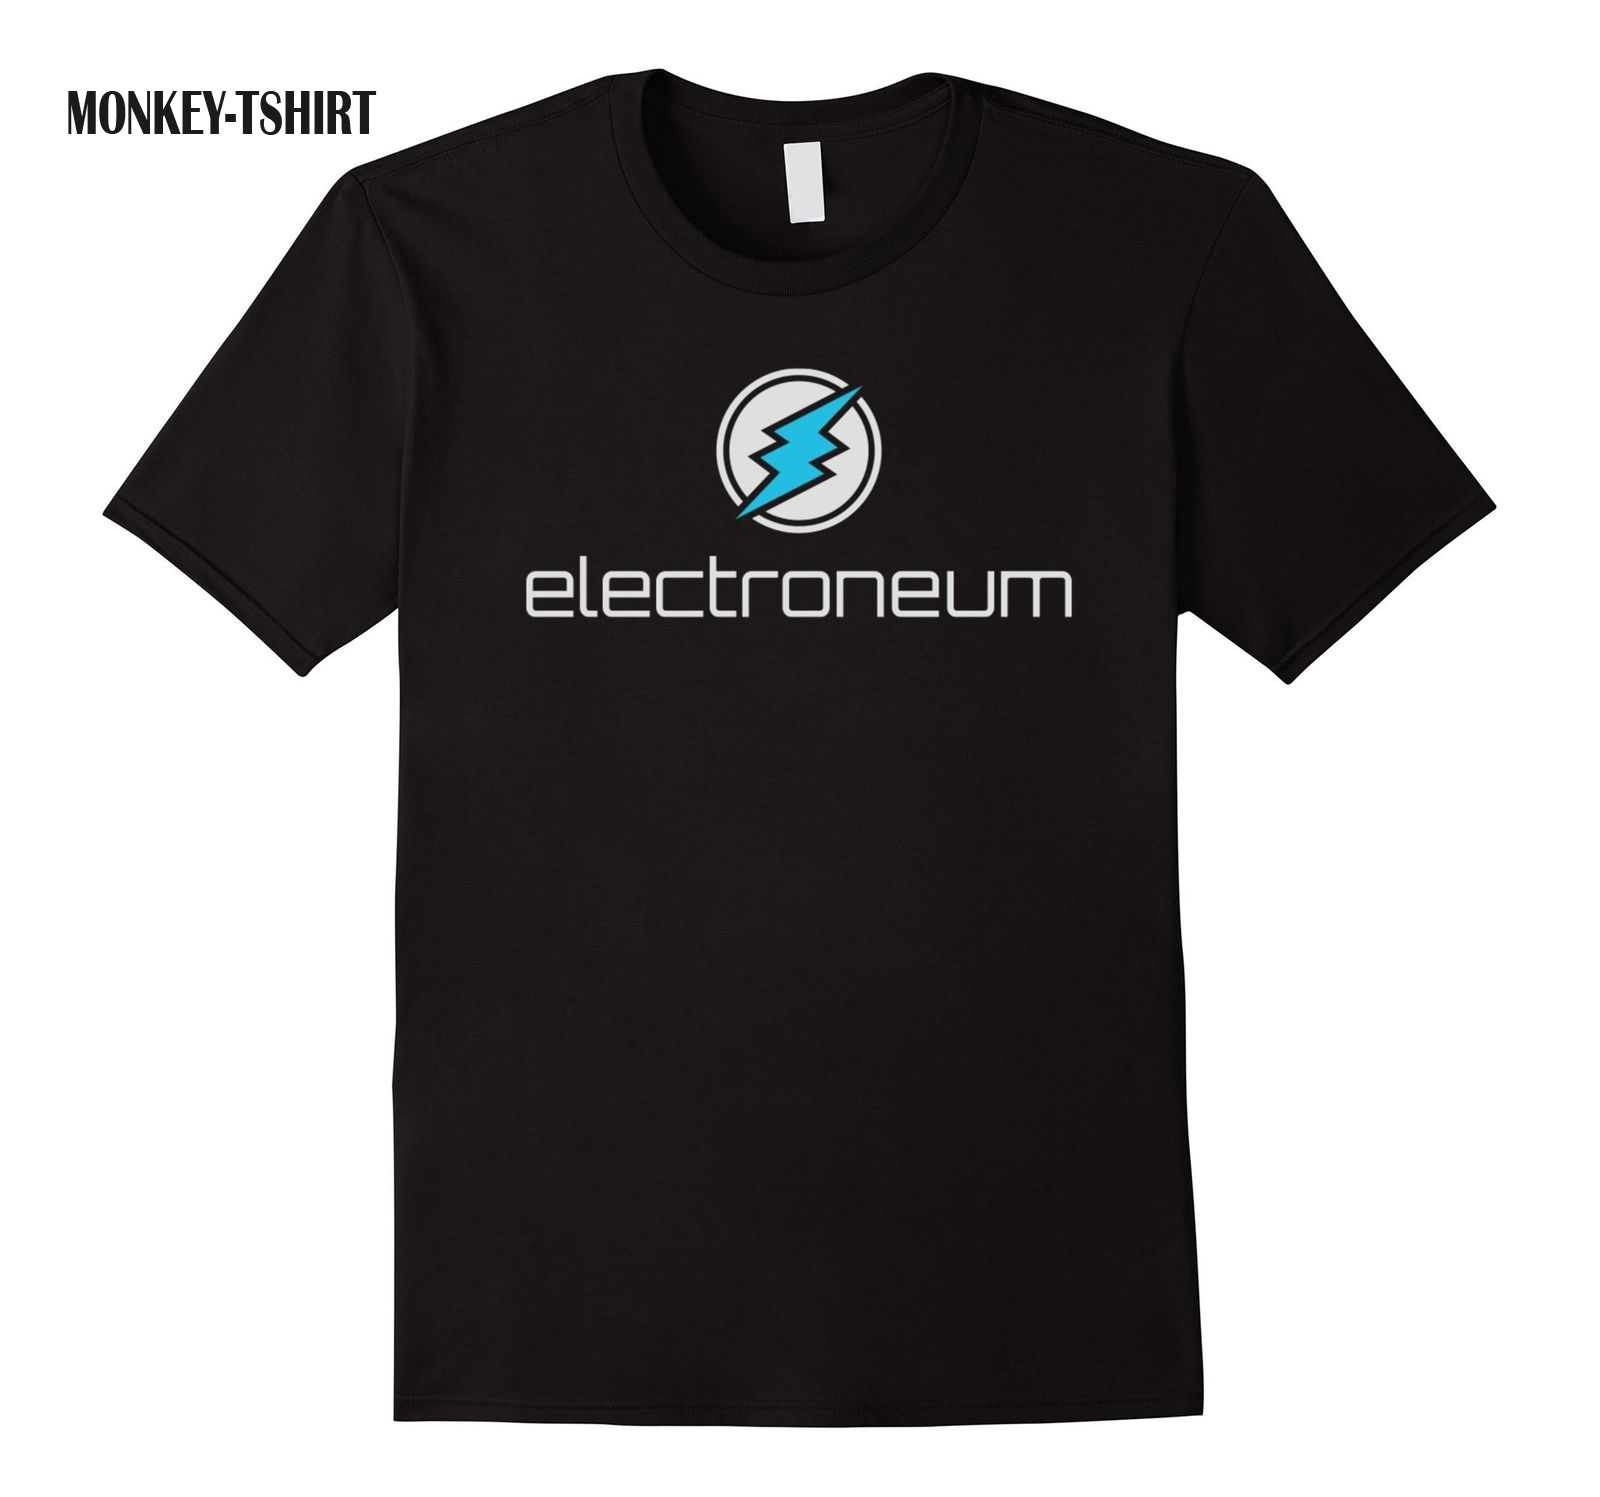 Electroneum Etn Cryptocurrency Blockchain T-Shirt Summer Short Sleeves Fashion T Shirt Free Shipping